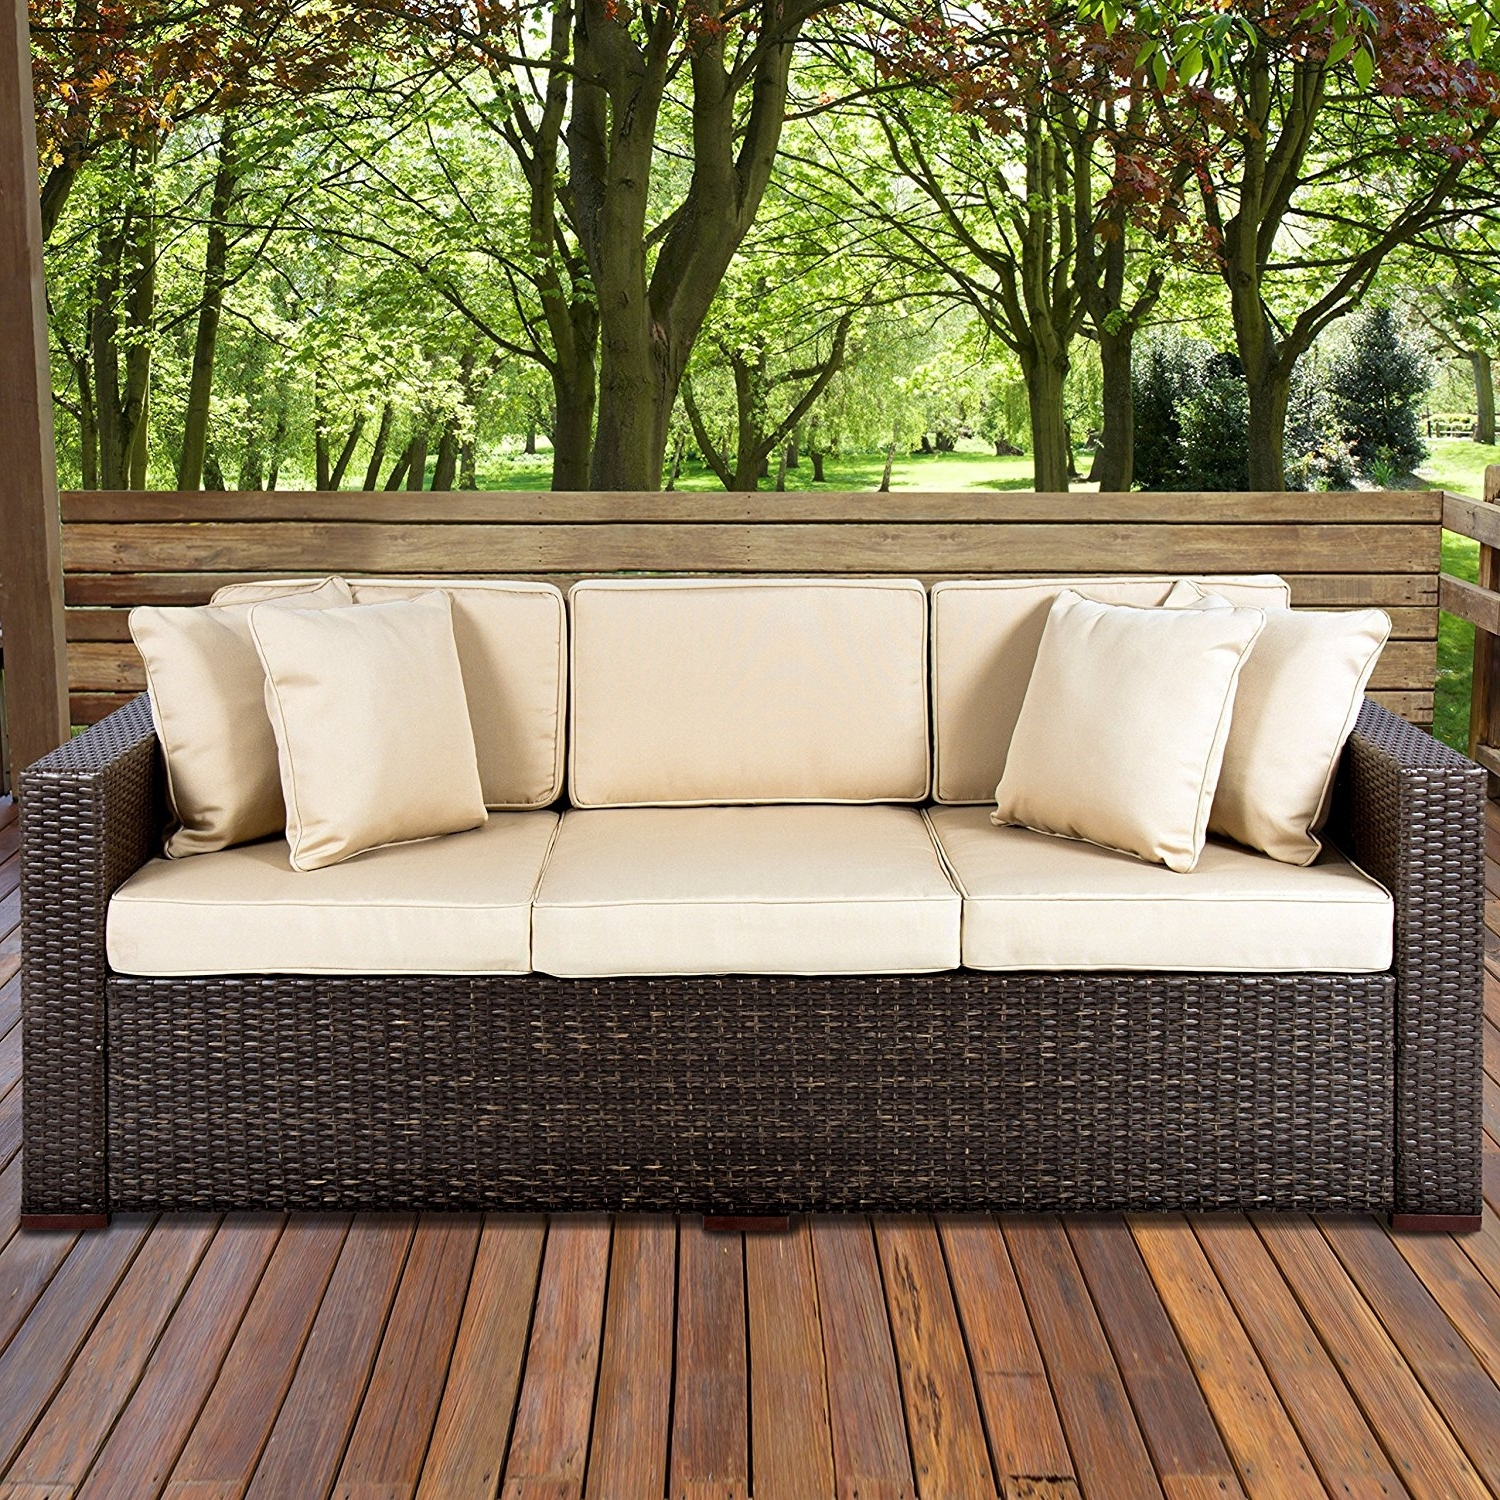 Most Current Vancouver Bc Canada Sectional Sofas Within Sofa : Patio Furniture White Wicker Outdoor Furniture Wicker (View 9 of 20)